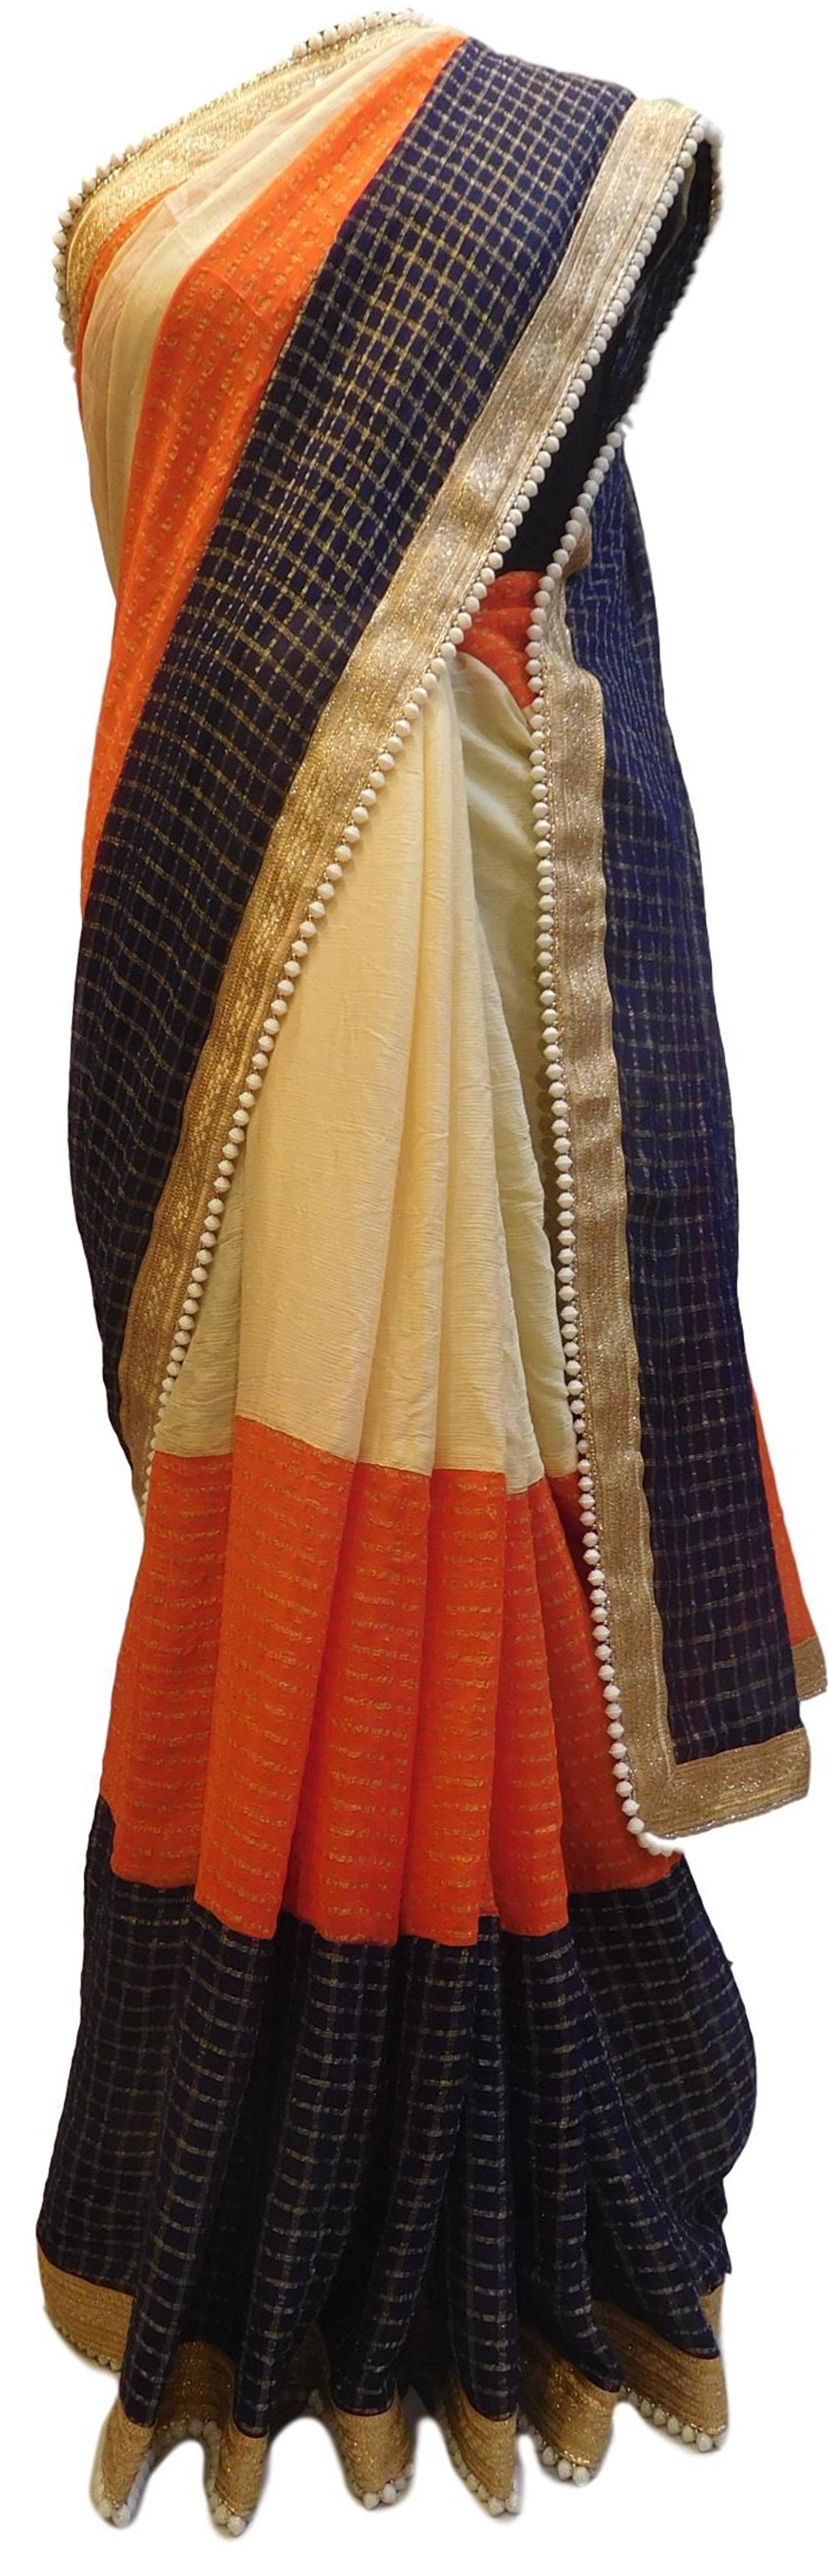 Cream Orange & Blue Designer PartyWear Georgette (Viscos) Zari Pearl Hand Embroidery Work Saree Sari